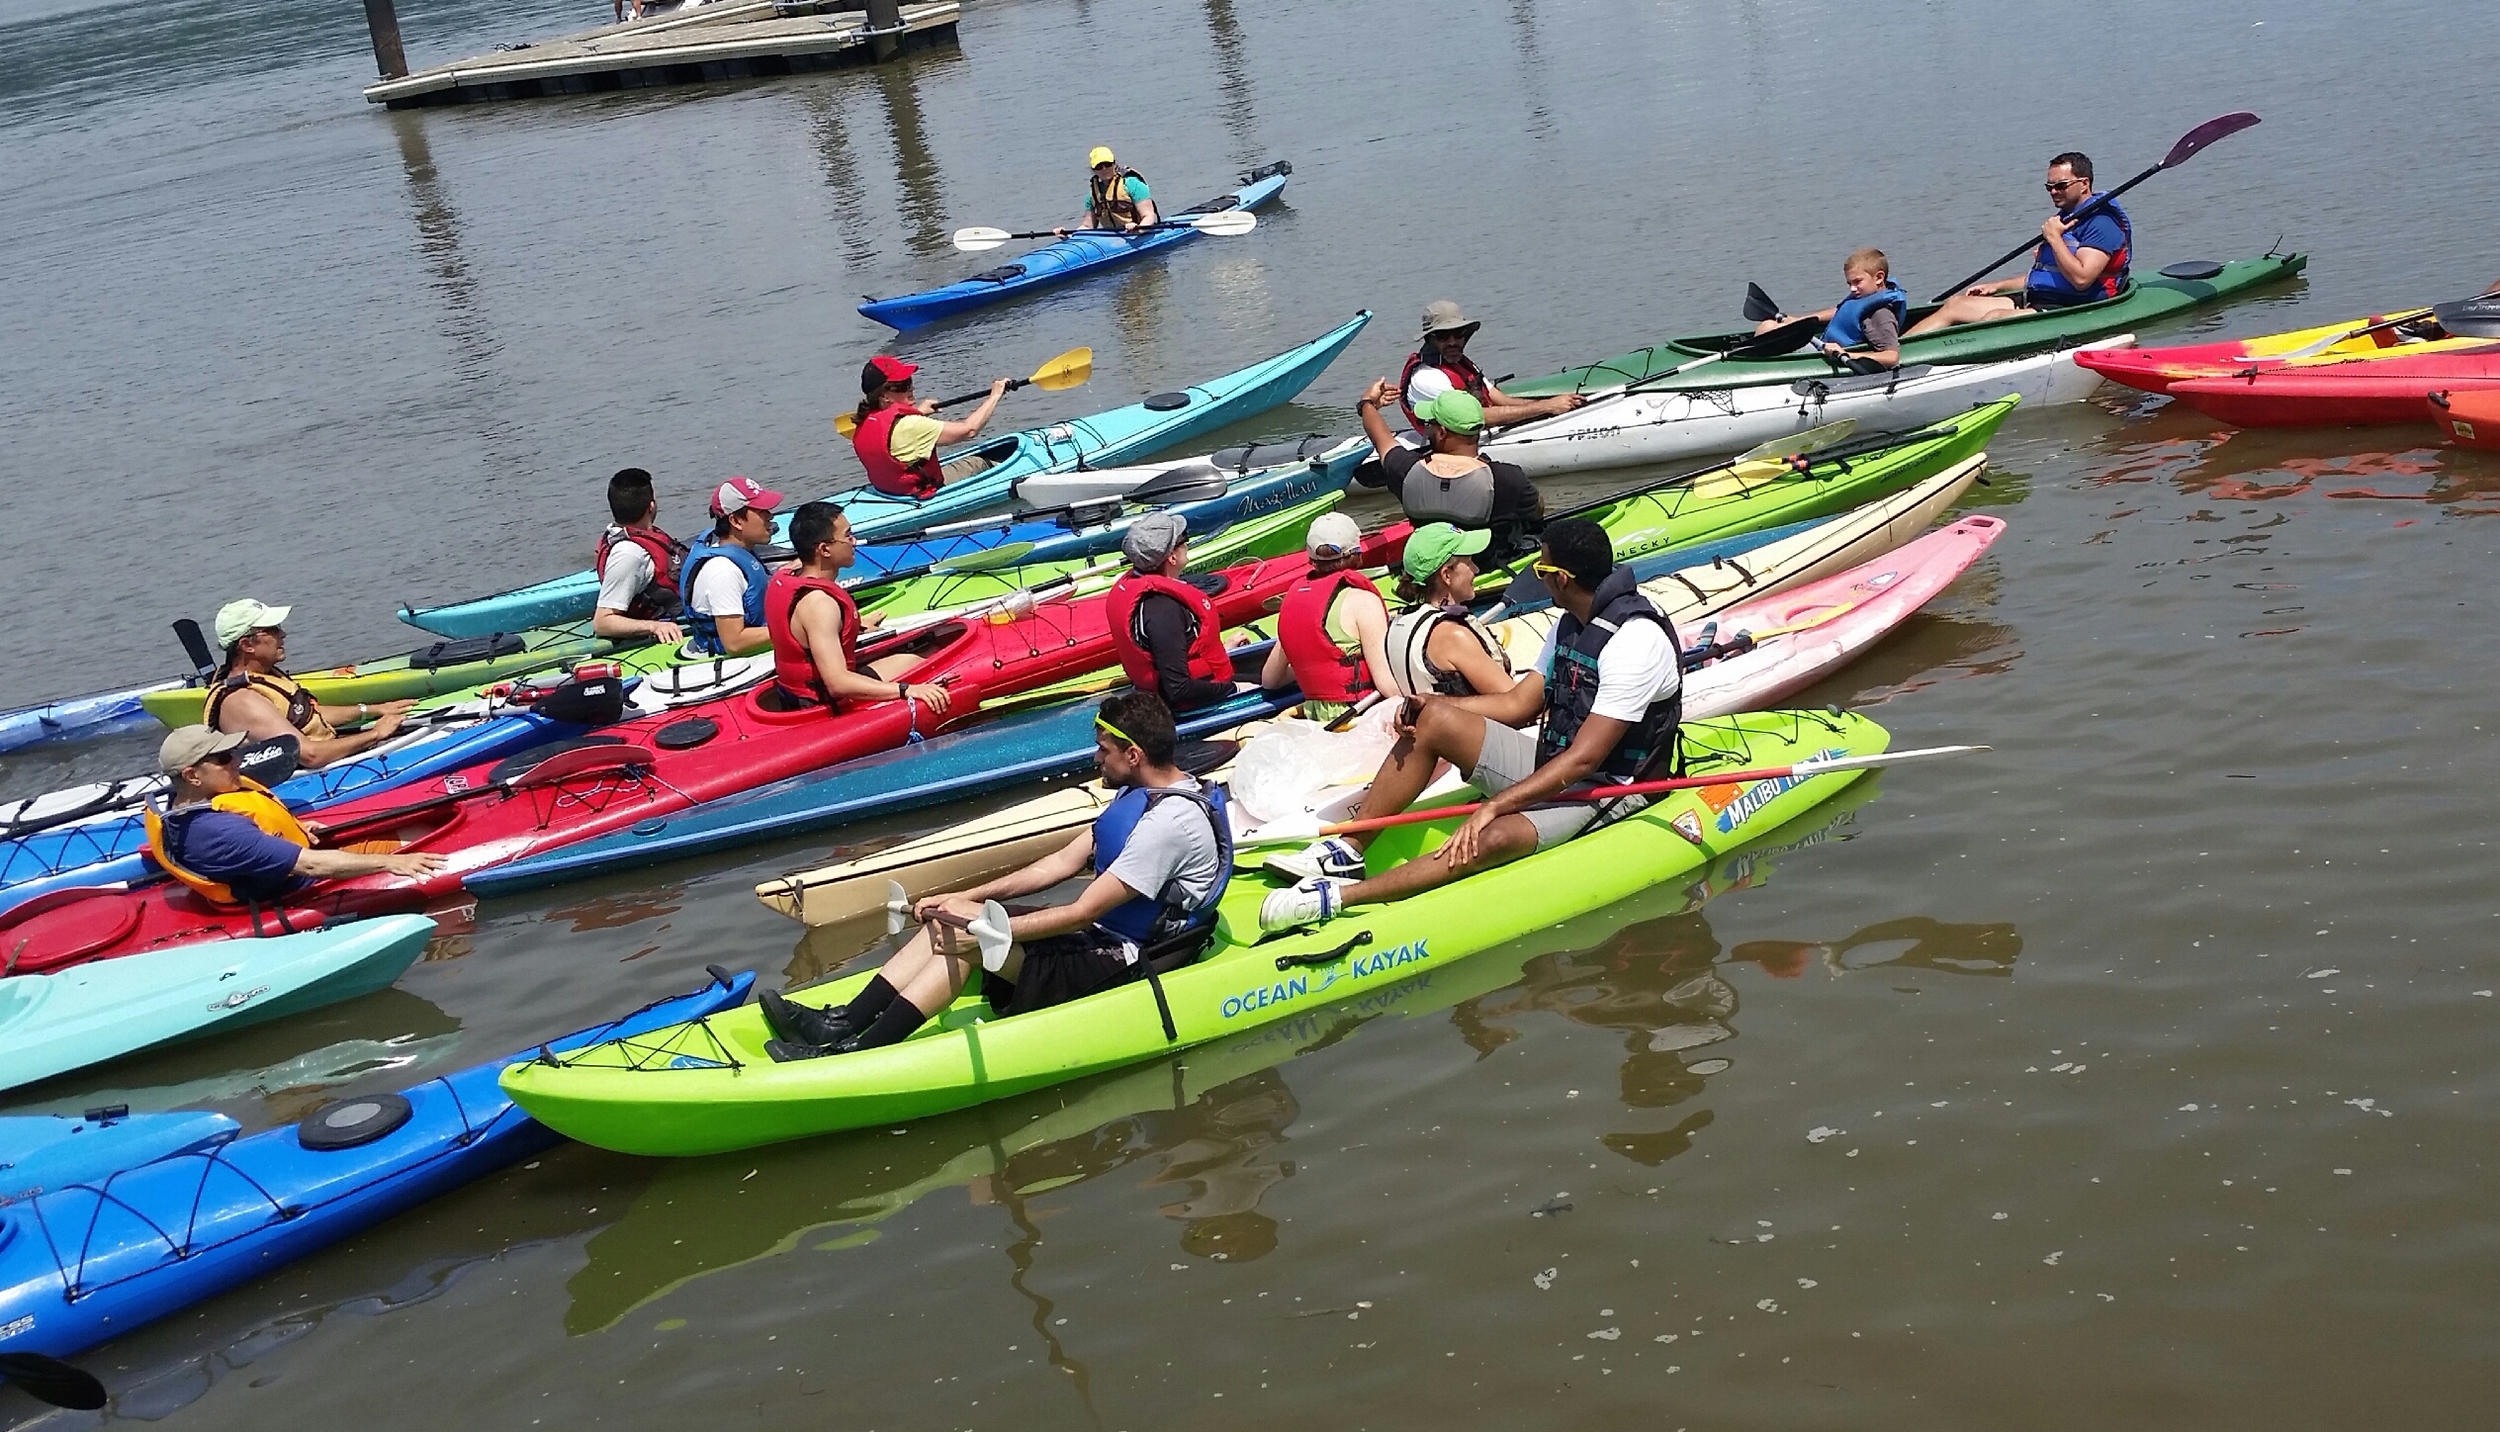 Lots of paddlers turned out for an beautiful July day on the Hudson.